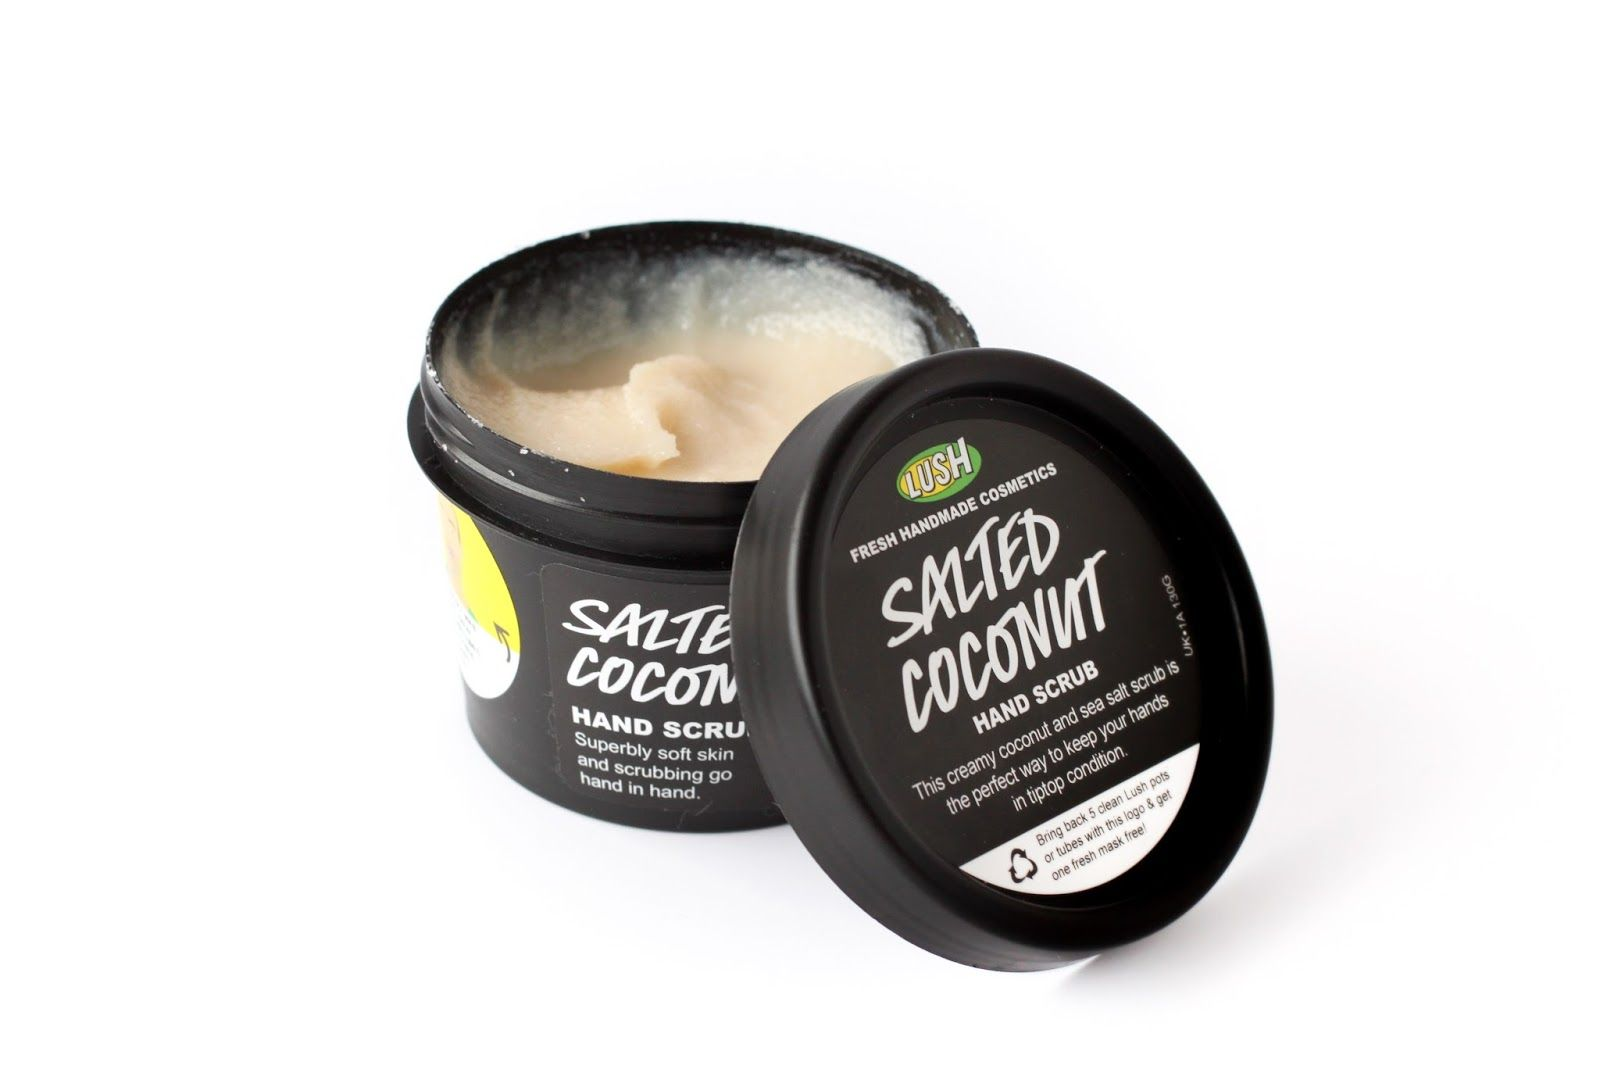 Lush Products Salted Coconut